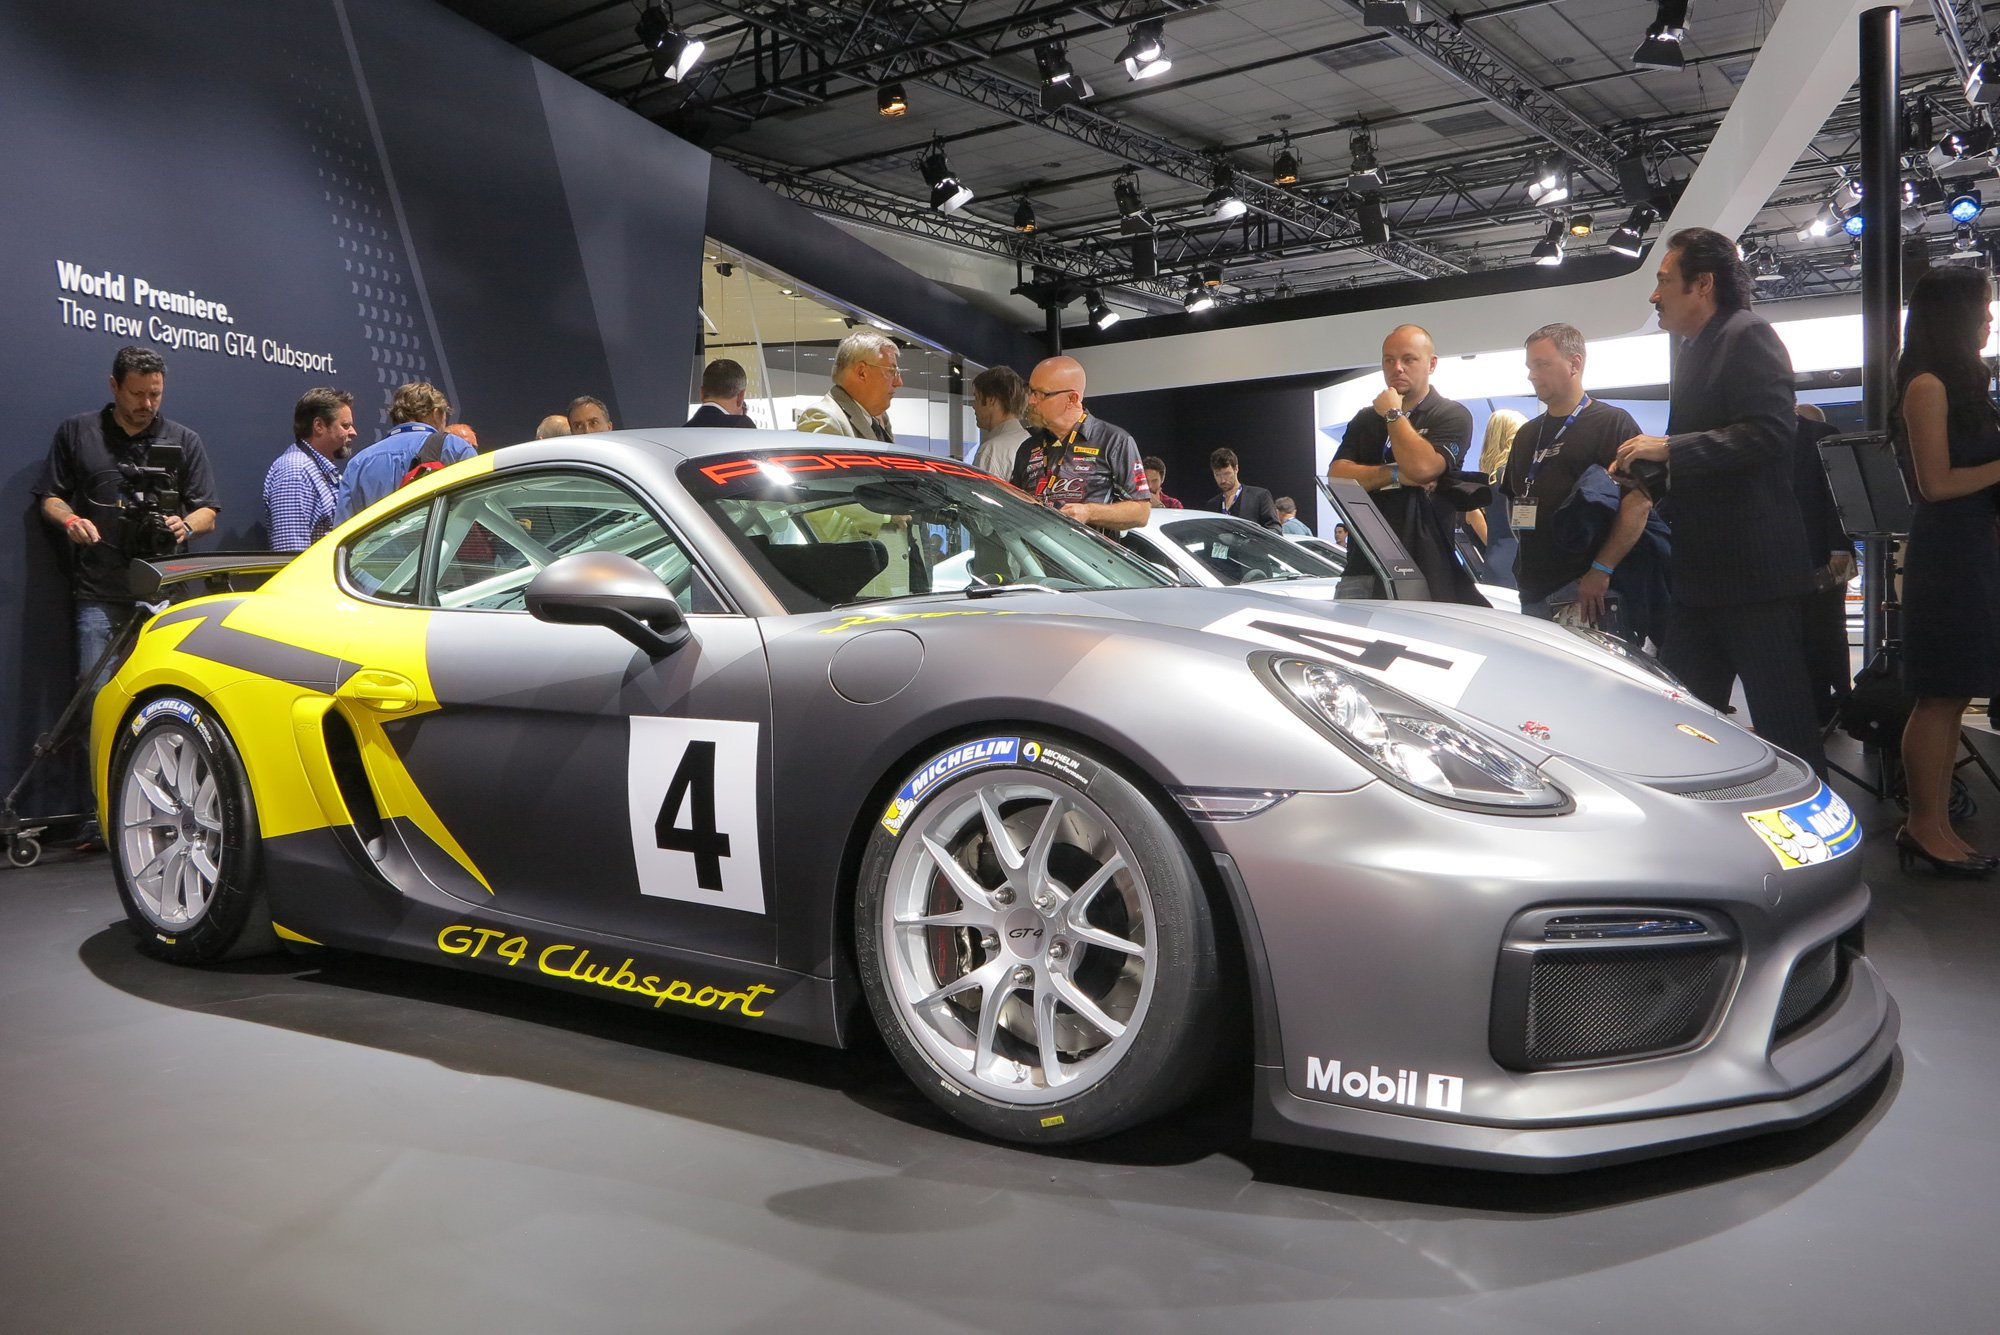 Gt4 Clubsport For Sale >> 2015 Los Angeles Auto Show - Exotic Car List